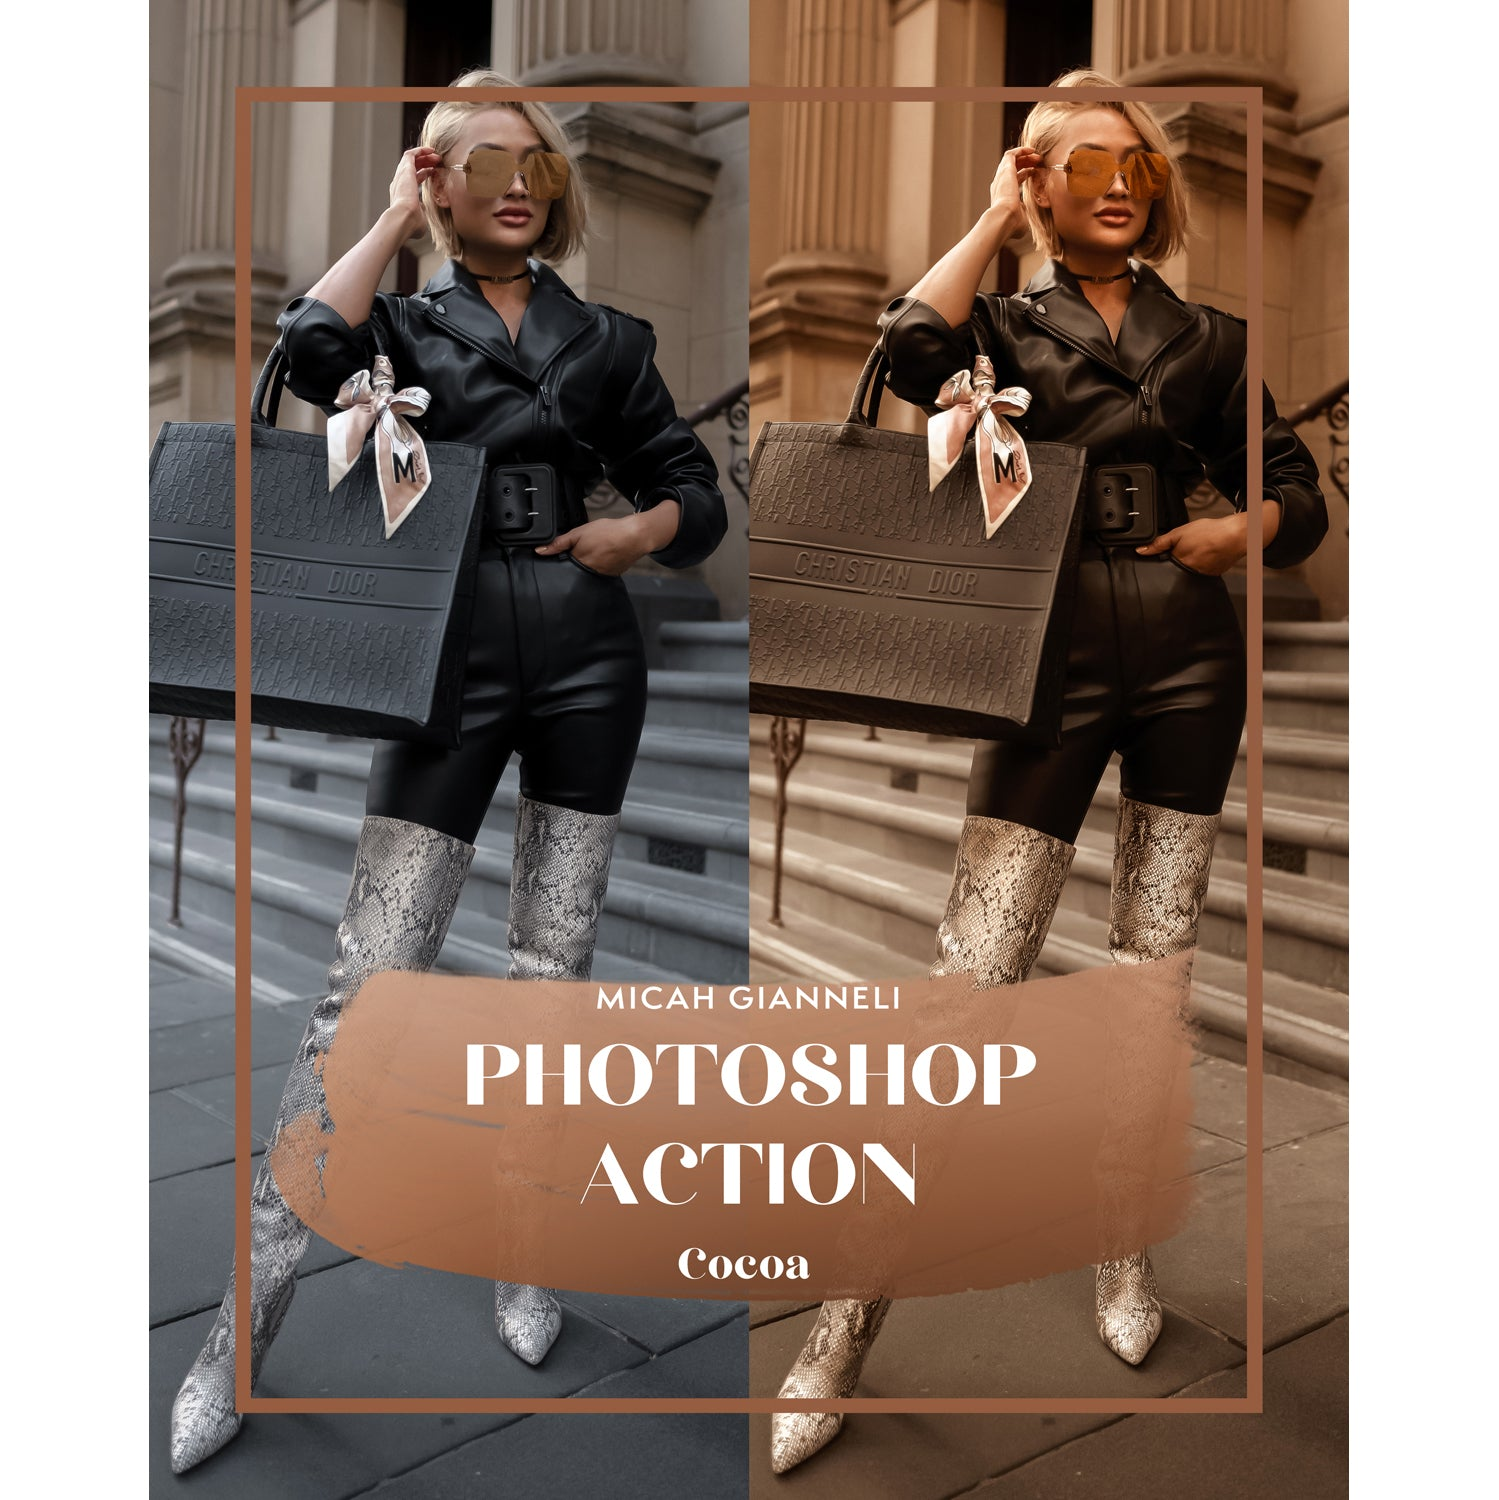 Photoshop Action - Cocoa